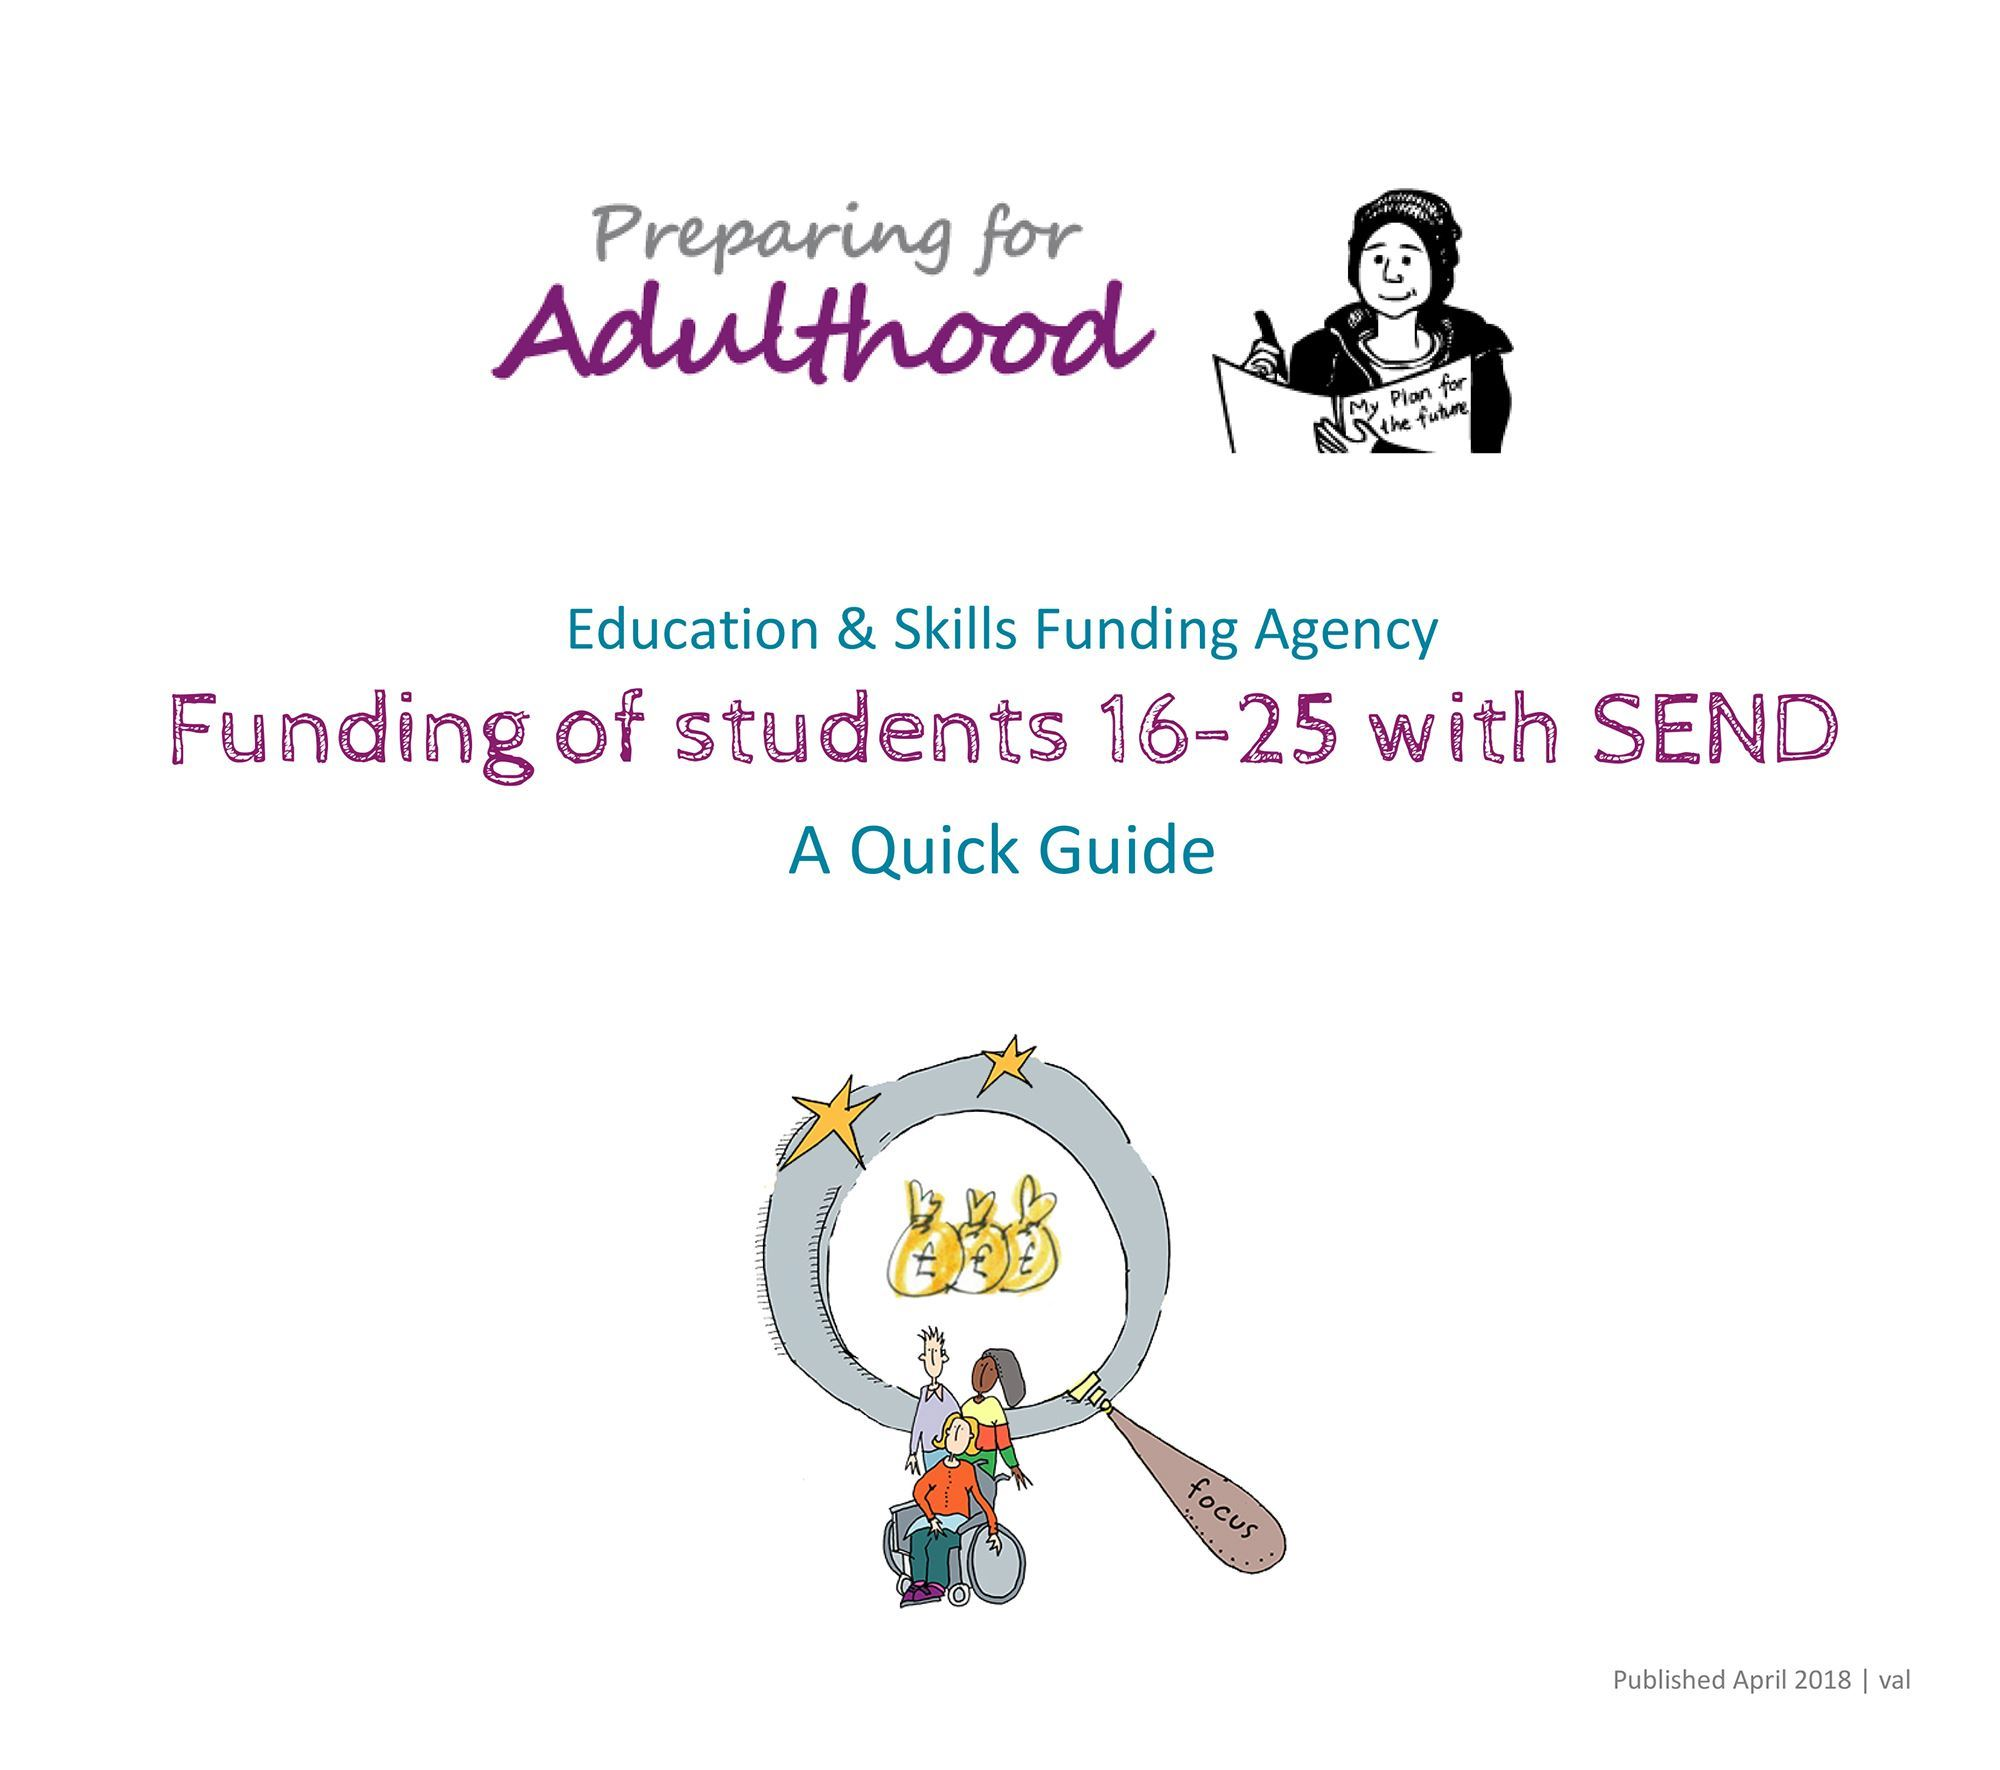 ESFA Guide Funding of students 16-25 with SEND